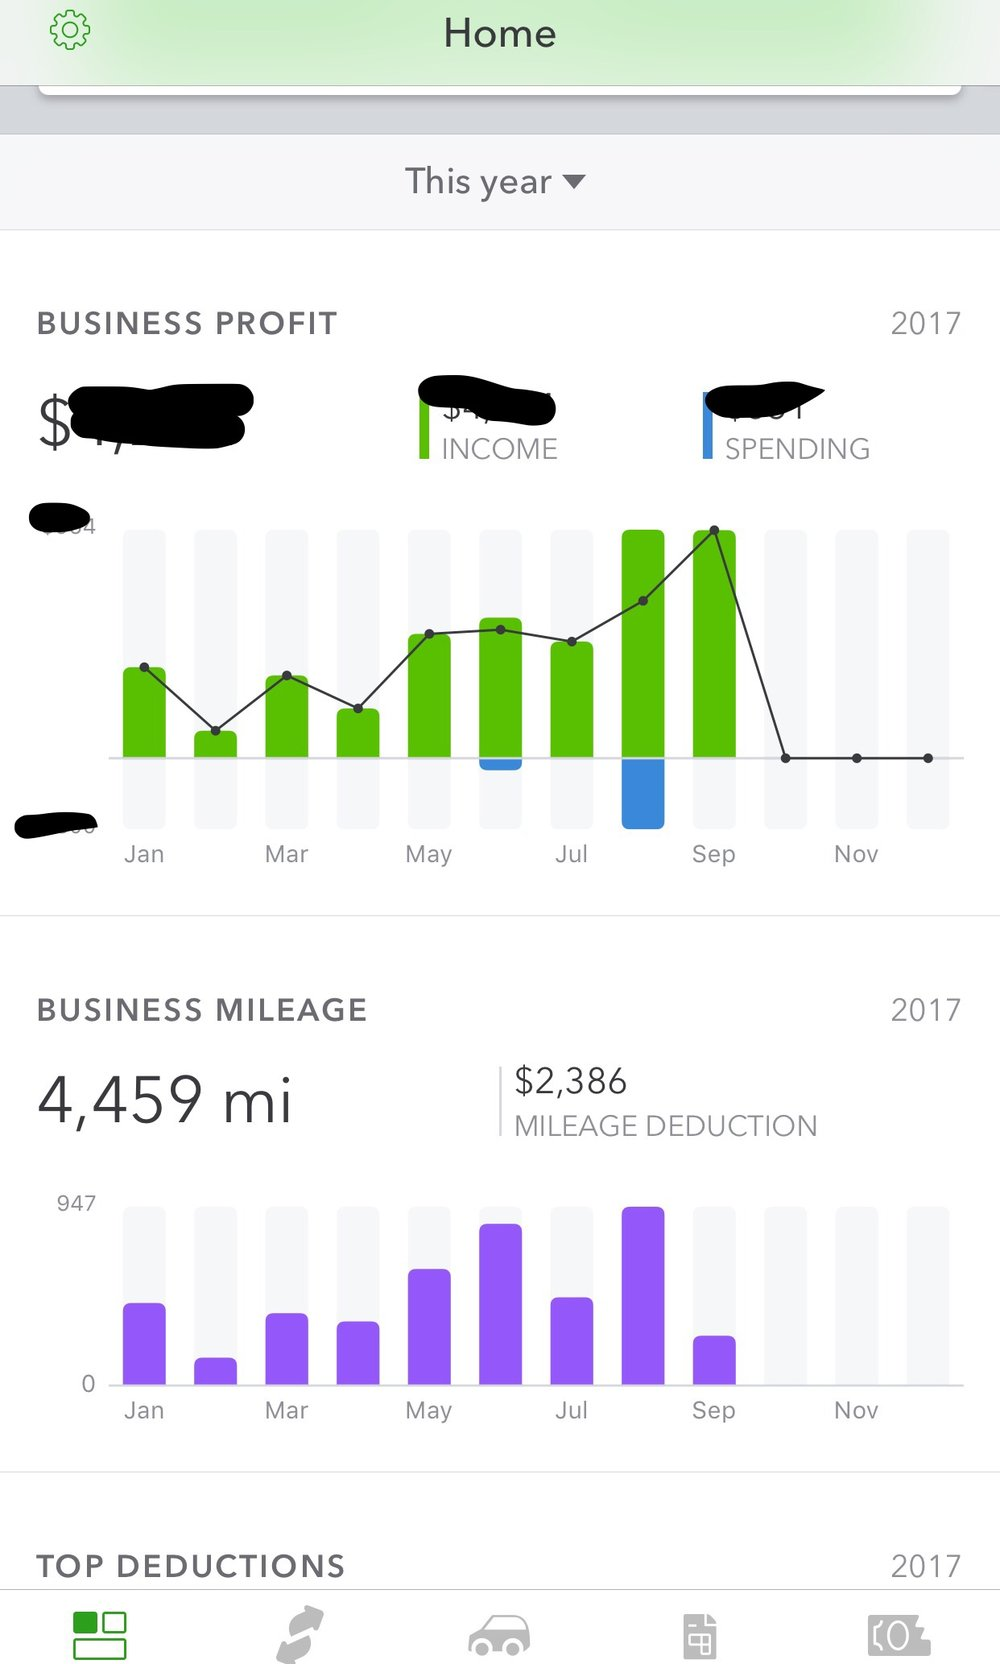 The month by month overview QuickBooks gives you via the mobile app. This allows you to see trends and know when you busy times and lulls are so you can plan accordingly.